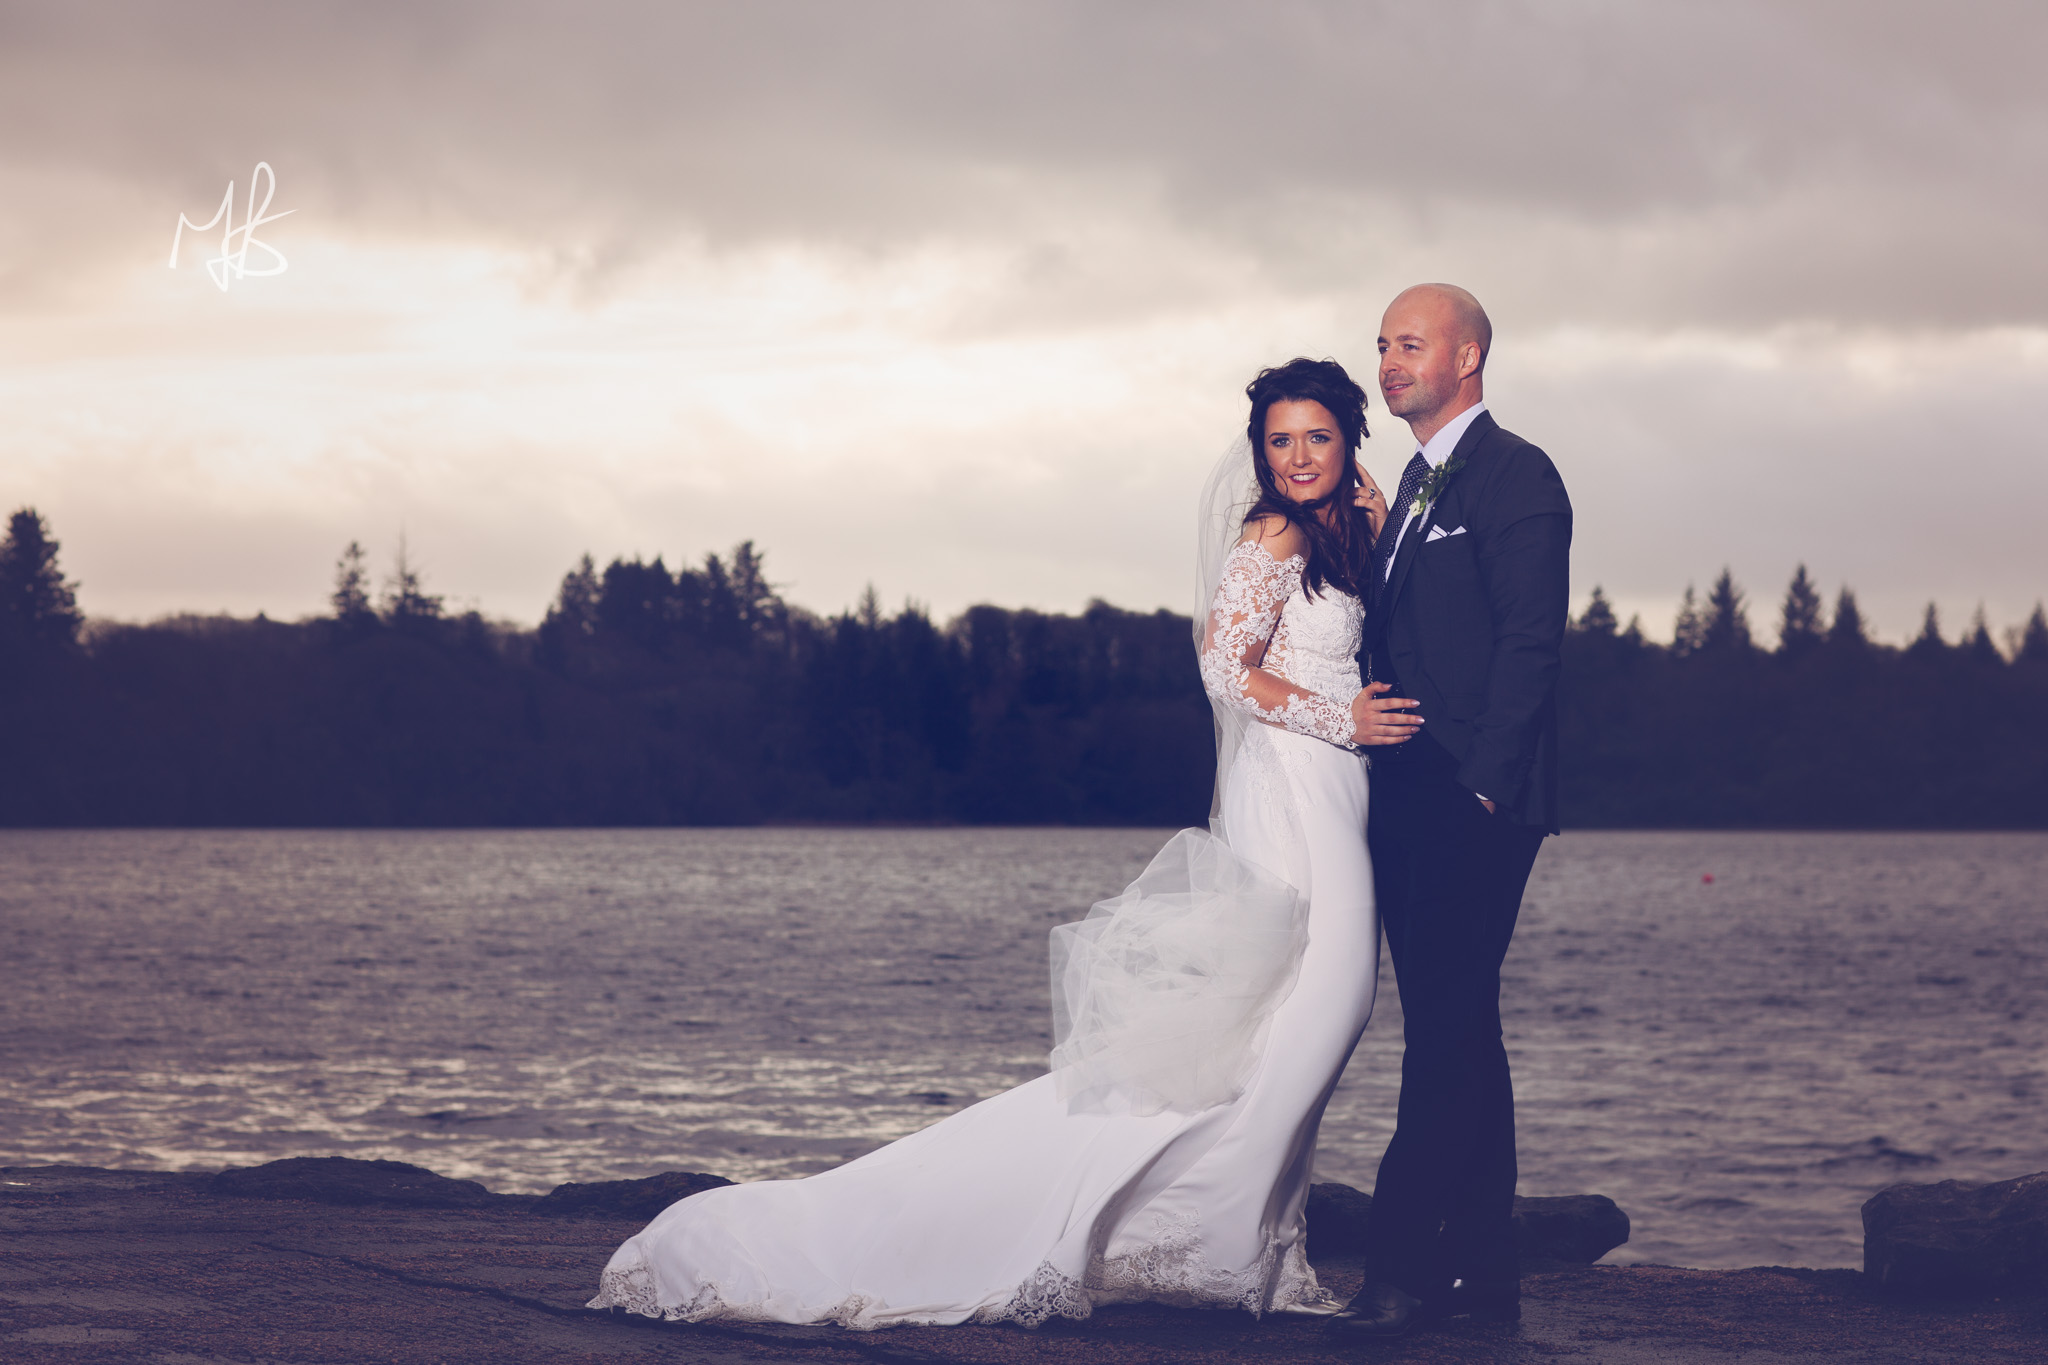 Mark_Barnes_Northern_Ireland_Wedding_Photography_Harveys_point_Wedding_Photography_Adam&Gemma-220.jpg